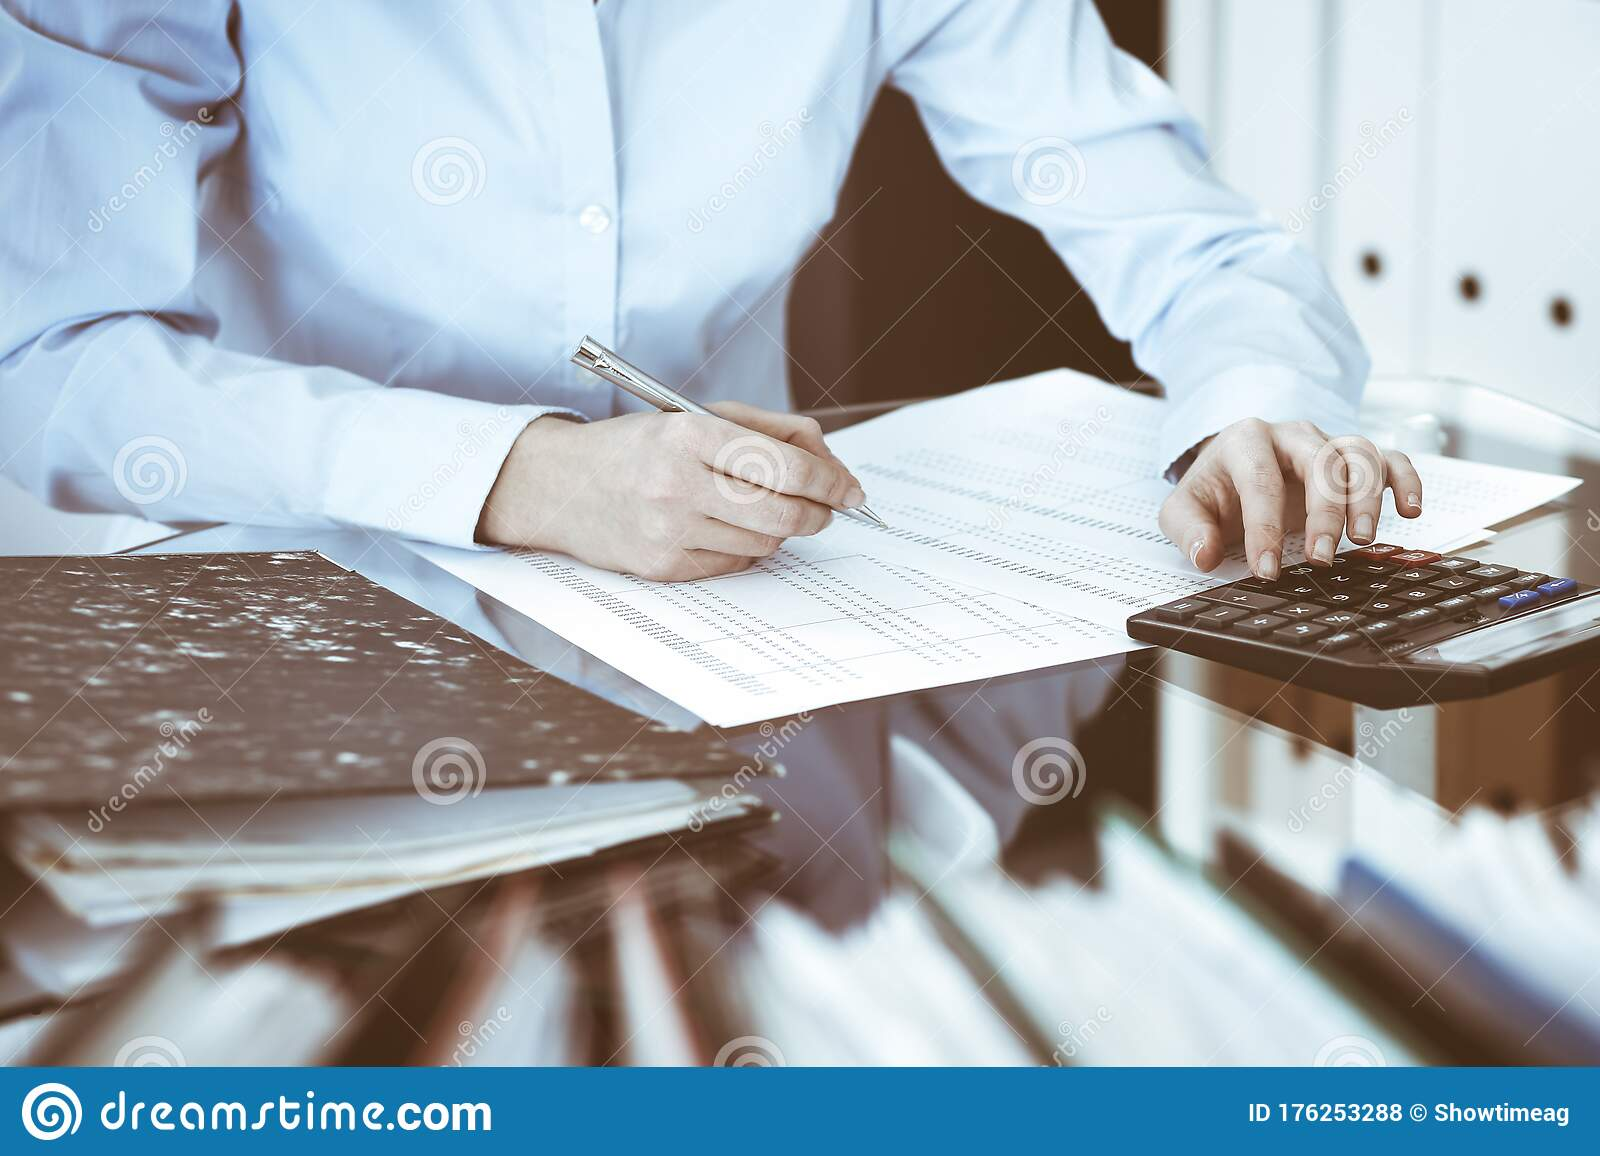 Bookkeeper Woman Or Financial Inspector Making Report Calculating Or Checking Balance Close Up Business Audit Or Tax Stock Photo Image Of Account Consultant 176253288